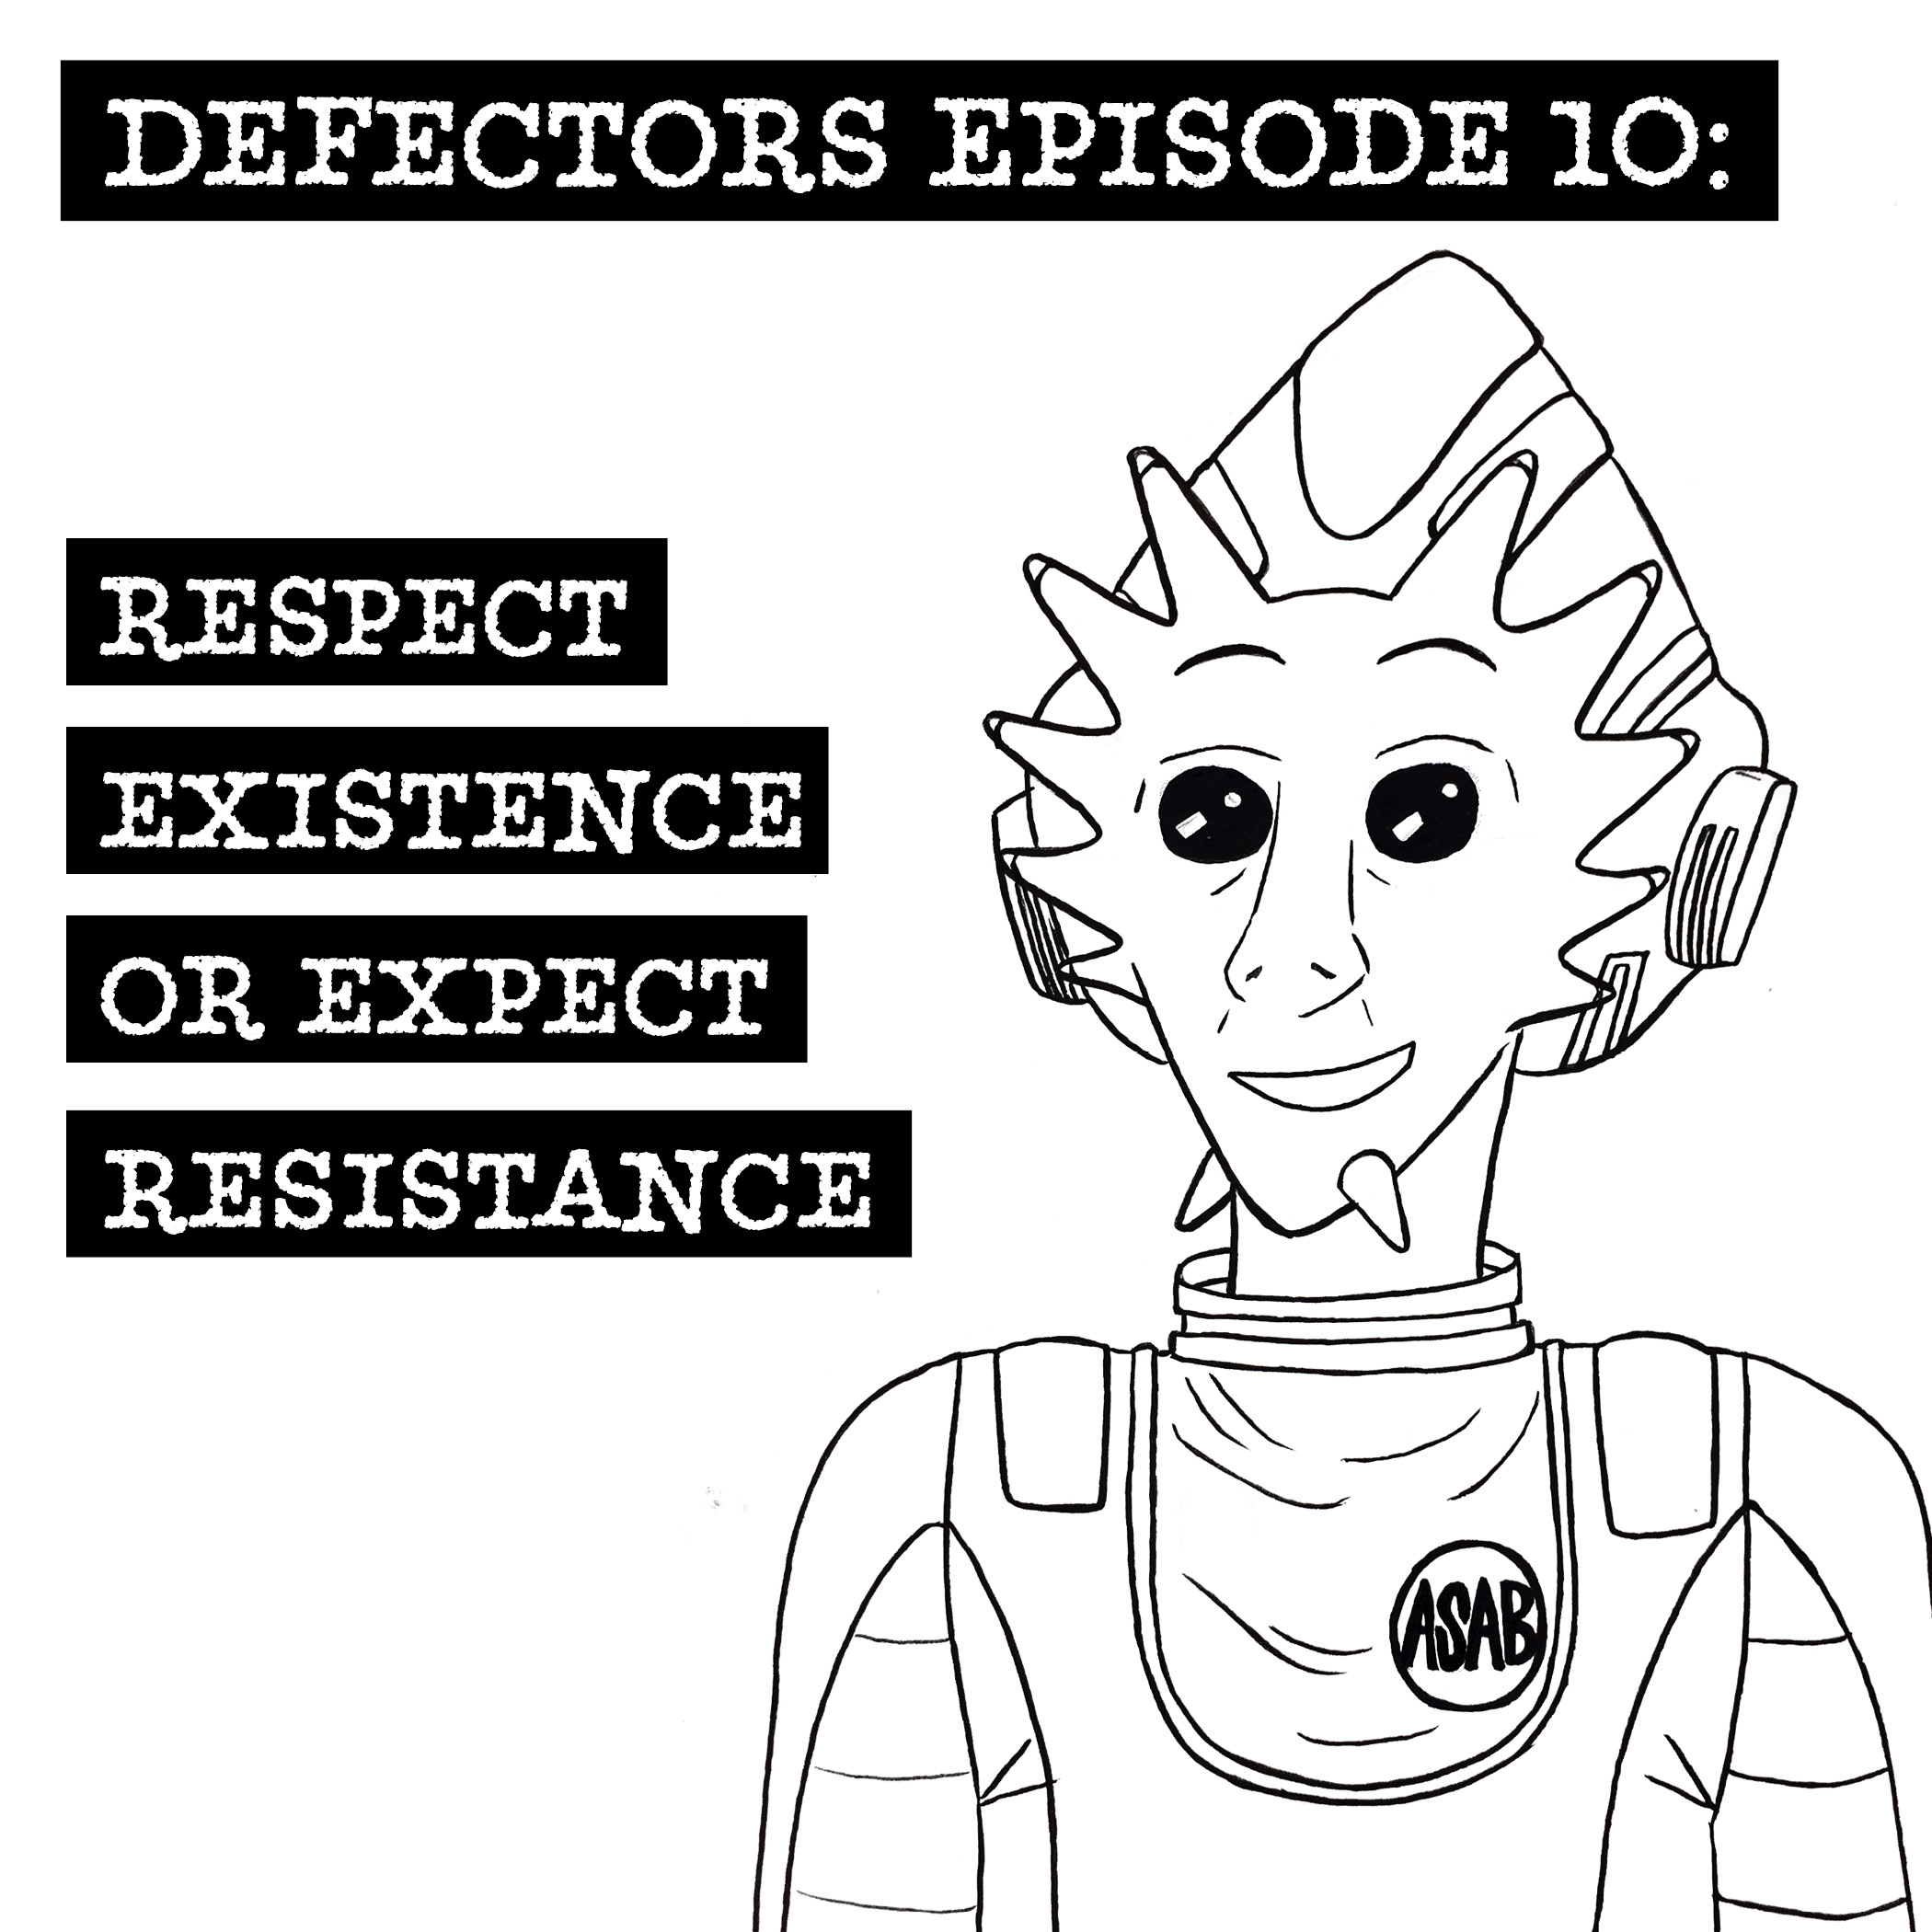 Defectors Episode 10: Respect Existence or Expect Resistance